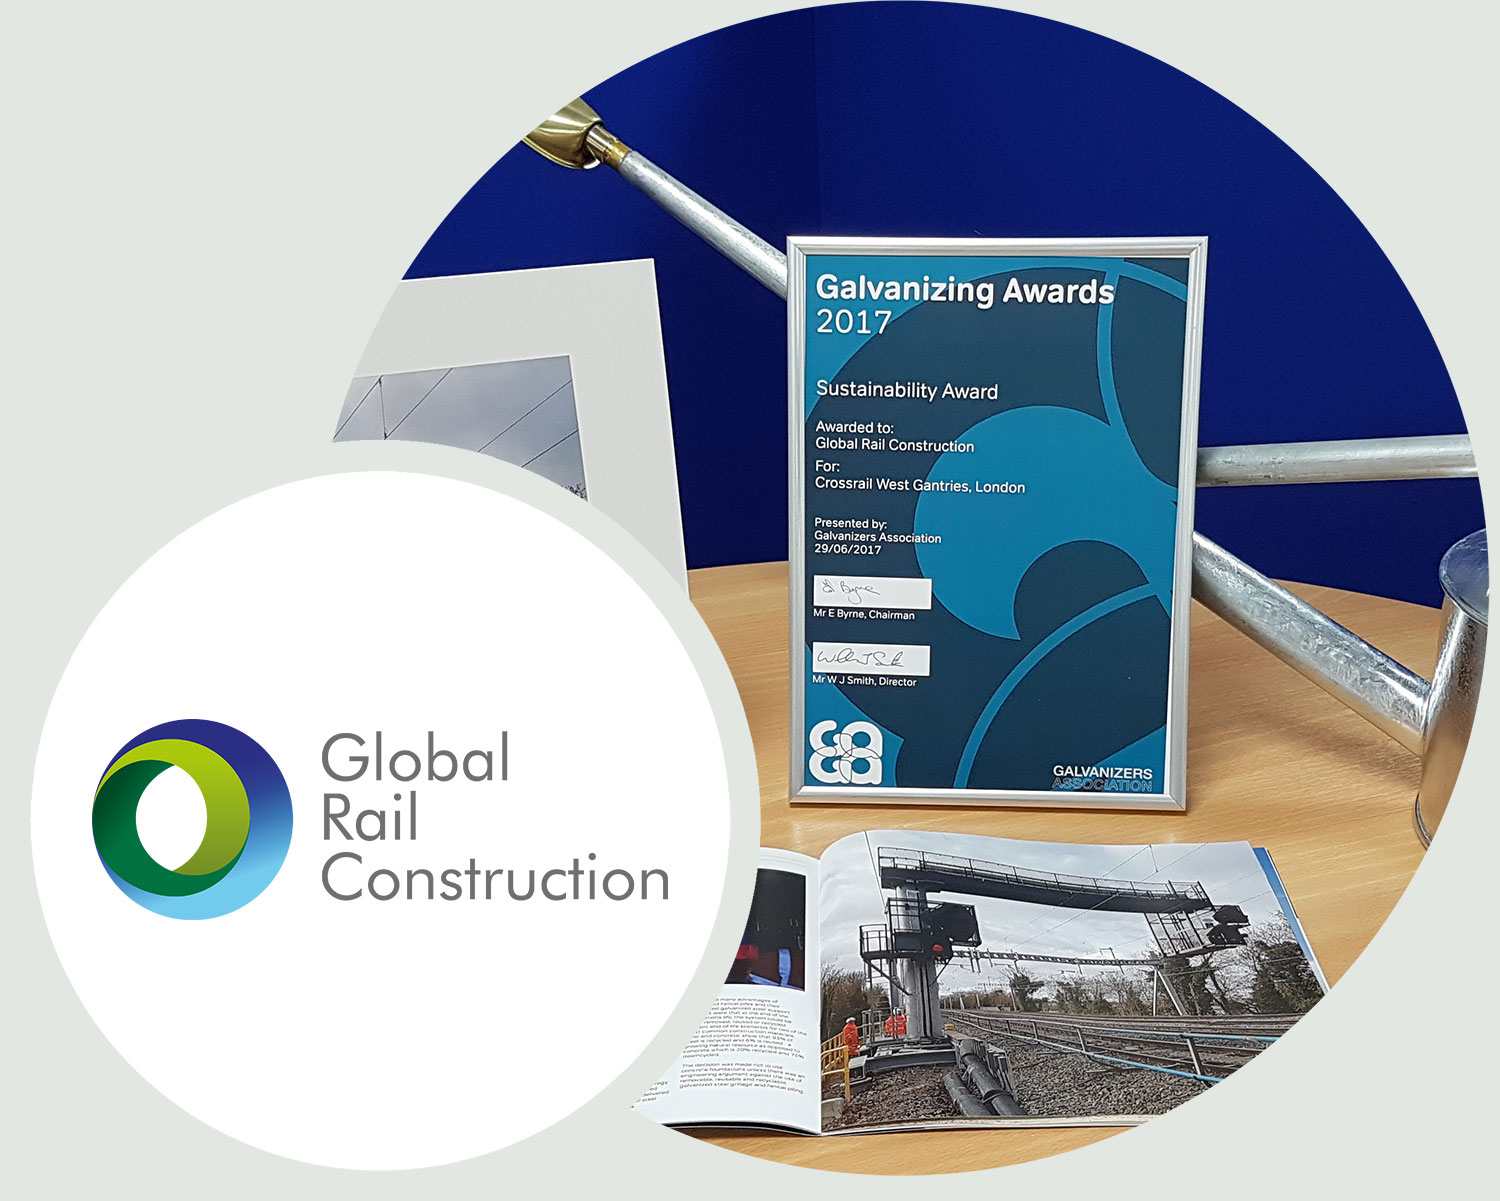 Global Rail Construction wins GAGA award